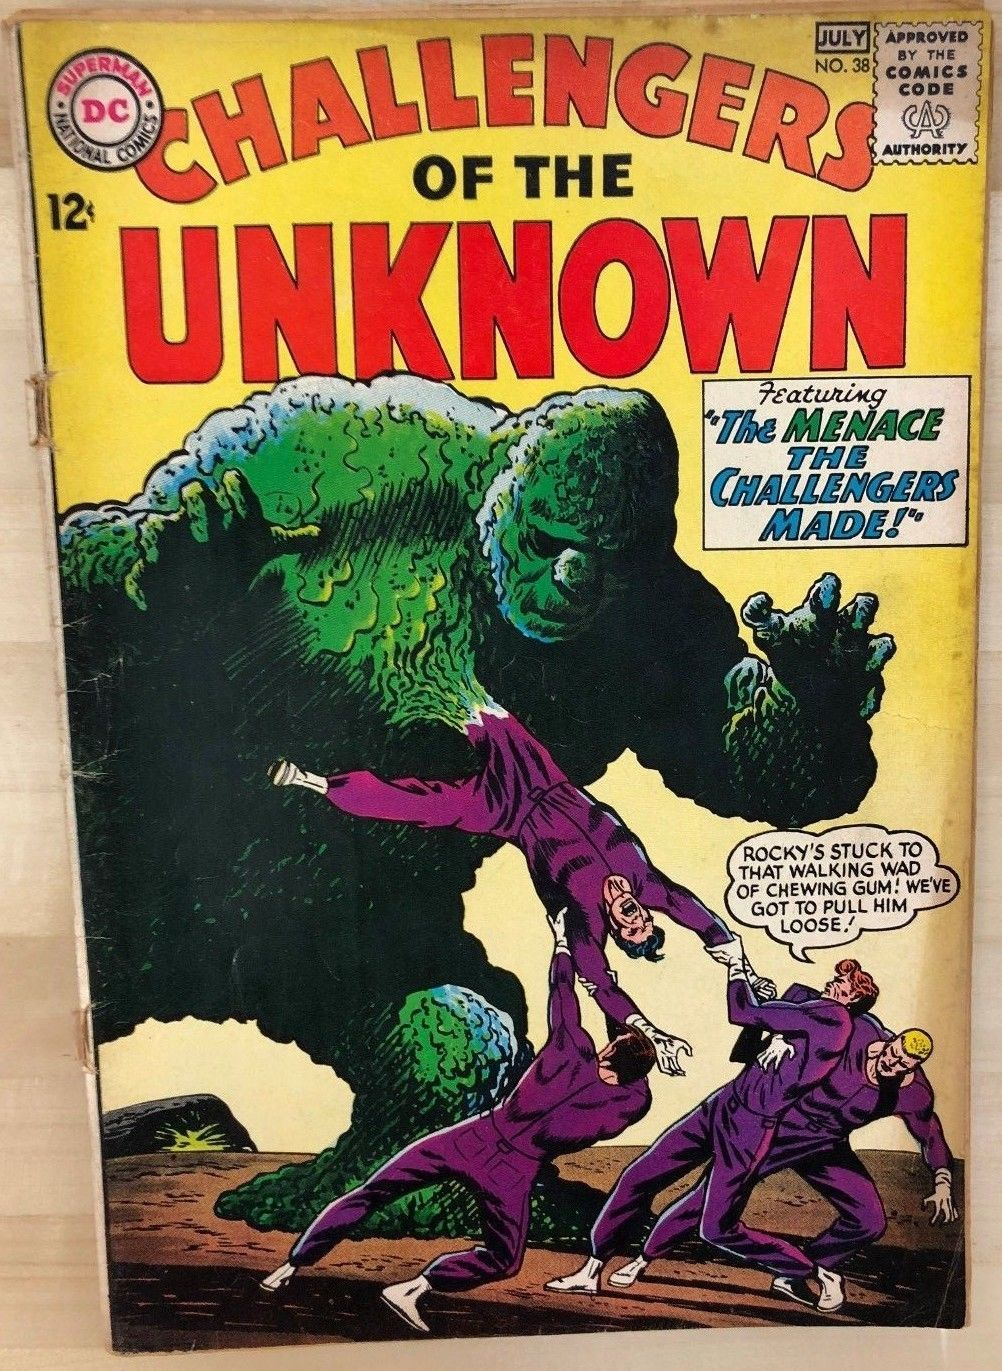 Primary image for CHALLENGERS OF THE UNKNOWN #38 (1964) DC Comics VG+